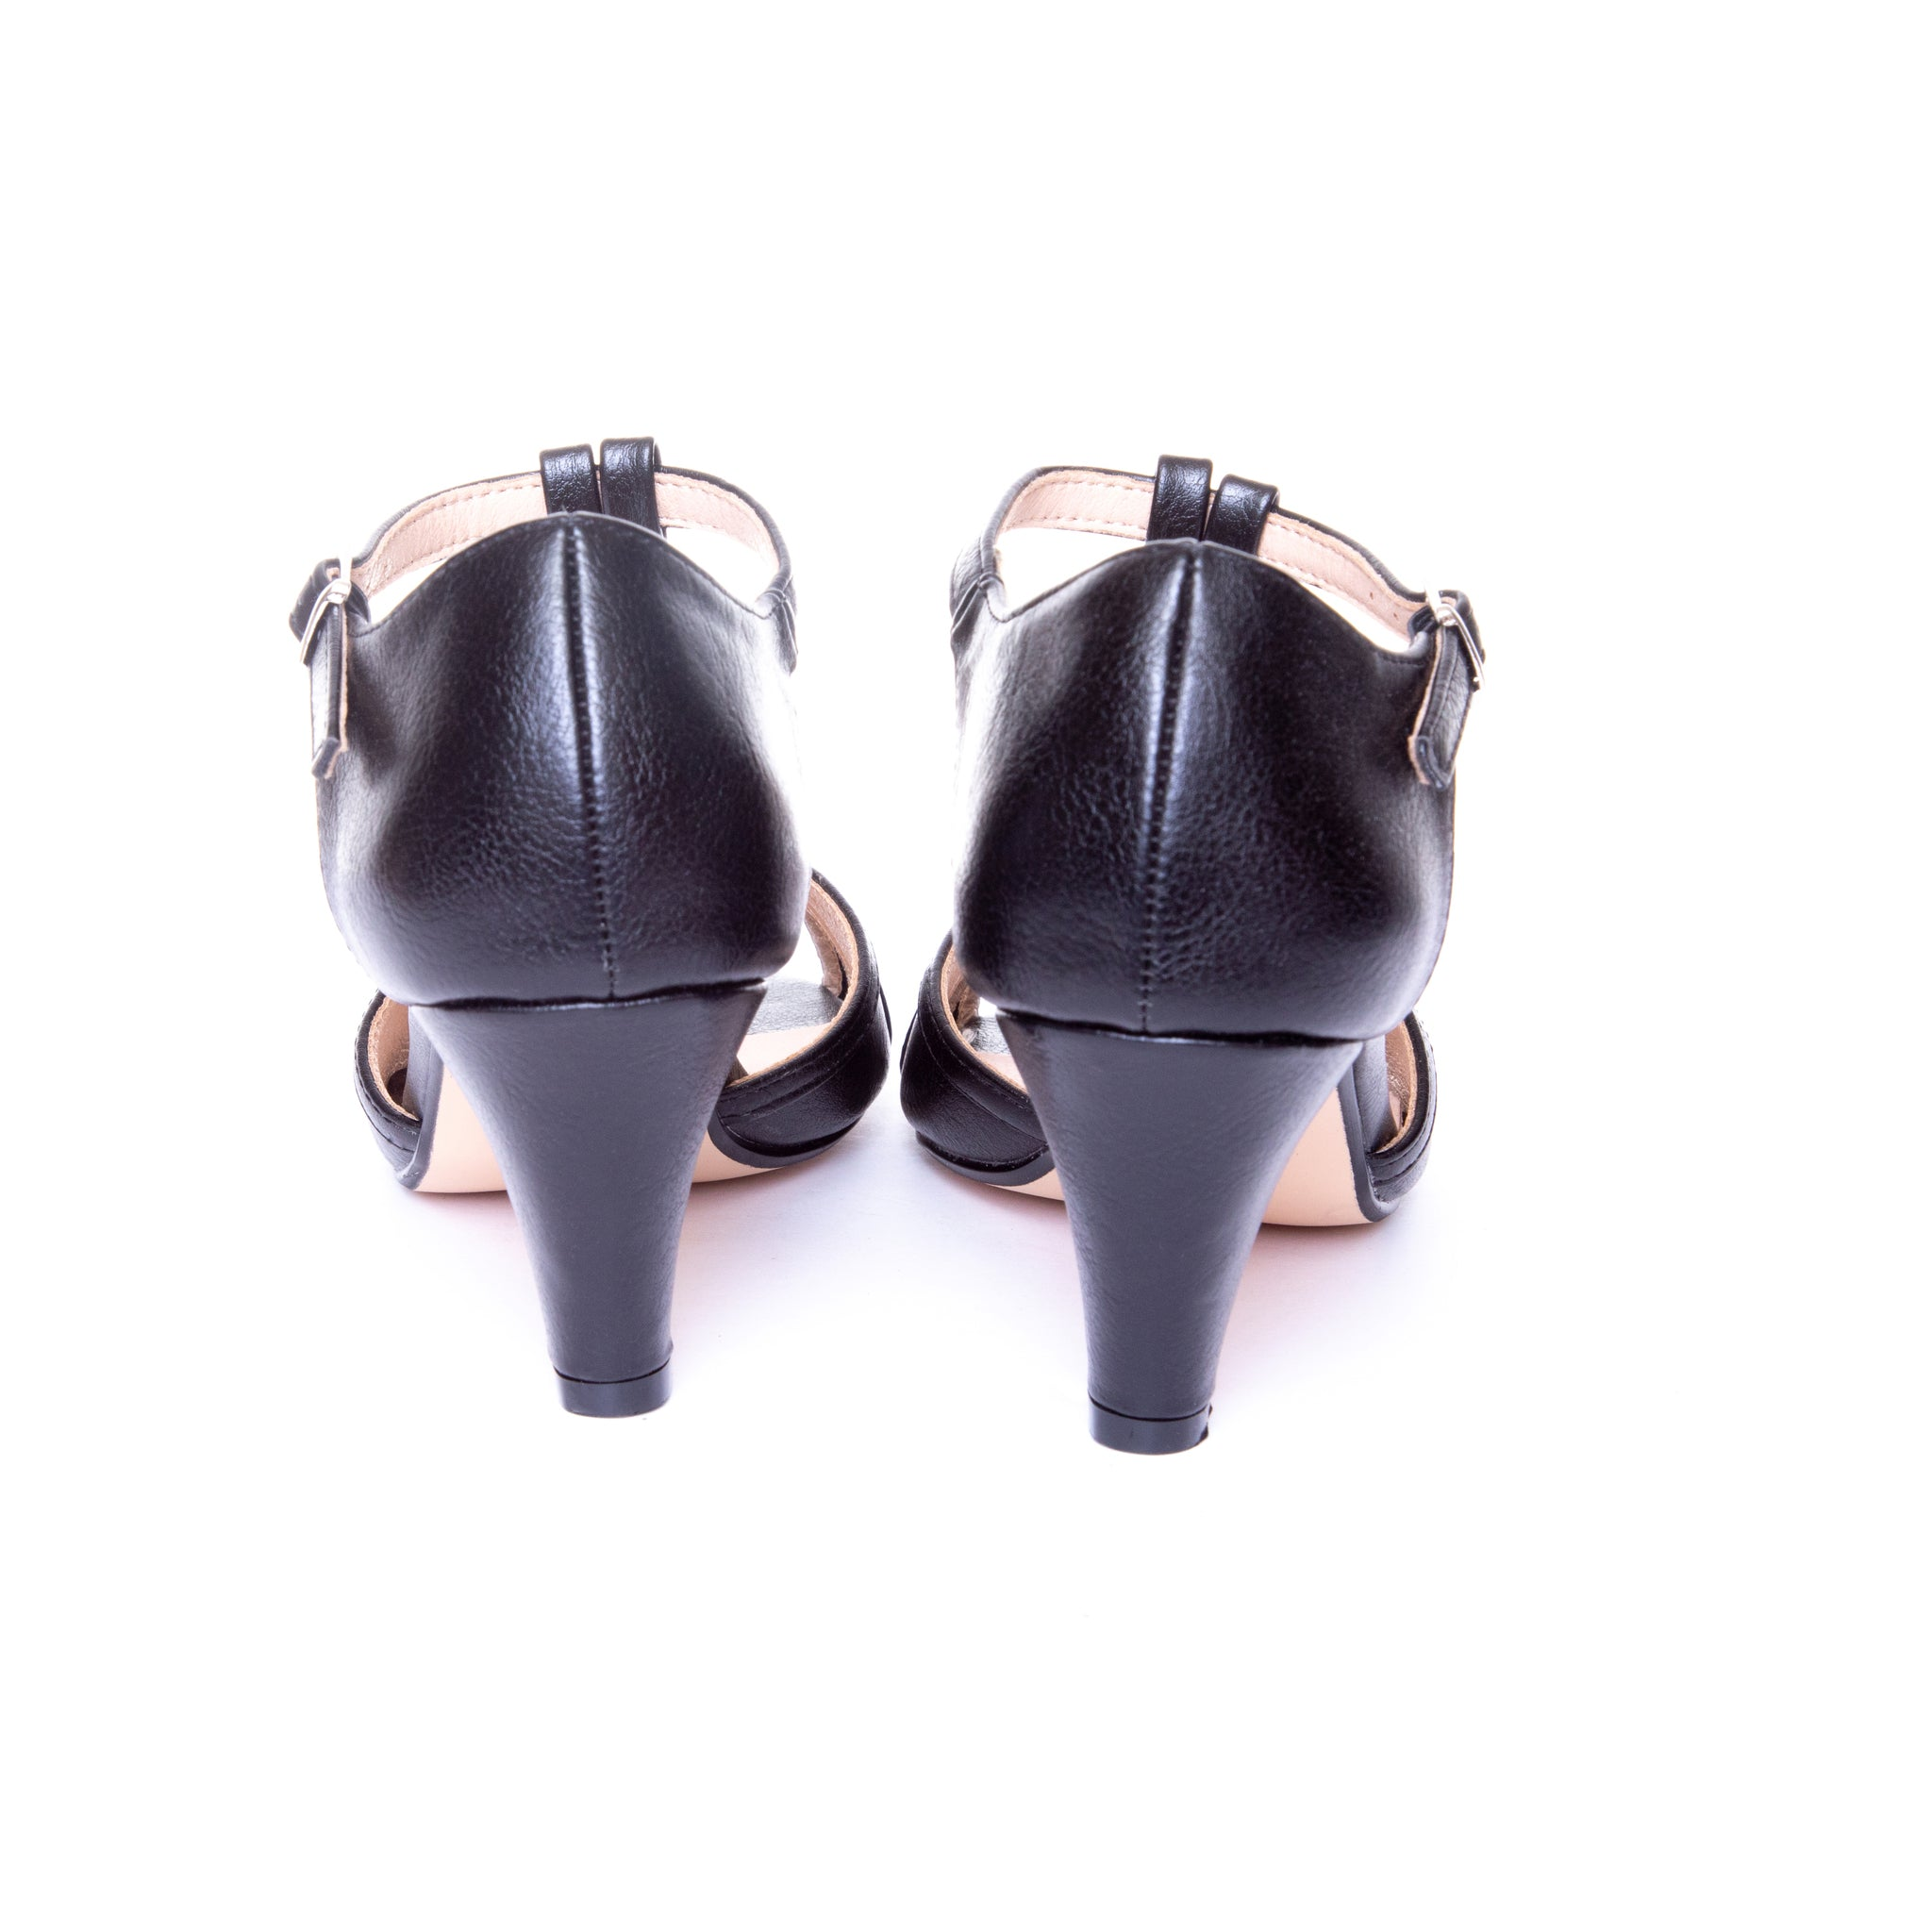 Becca by Dolce Nome | Open Toe Heel Sandals in Black (back view)